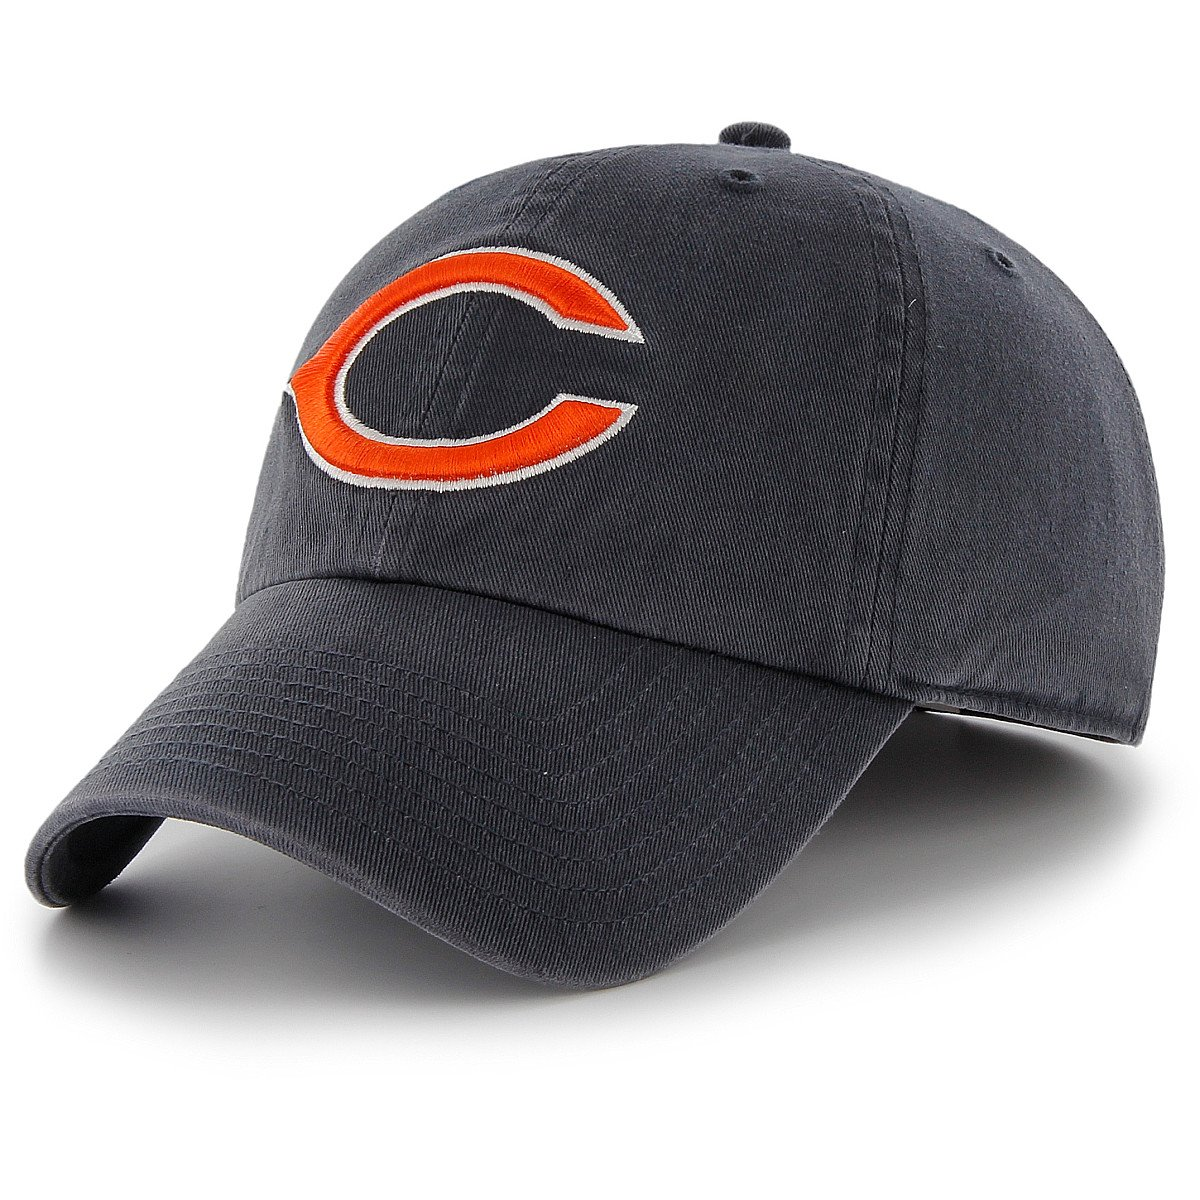 957021f2e4c Amazon.com   Men s  47 Brand Chicago Bears Franchise Slouch Fitted Hat  Large   Sports   Outdoors